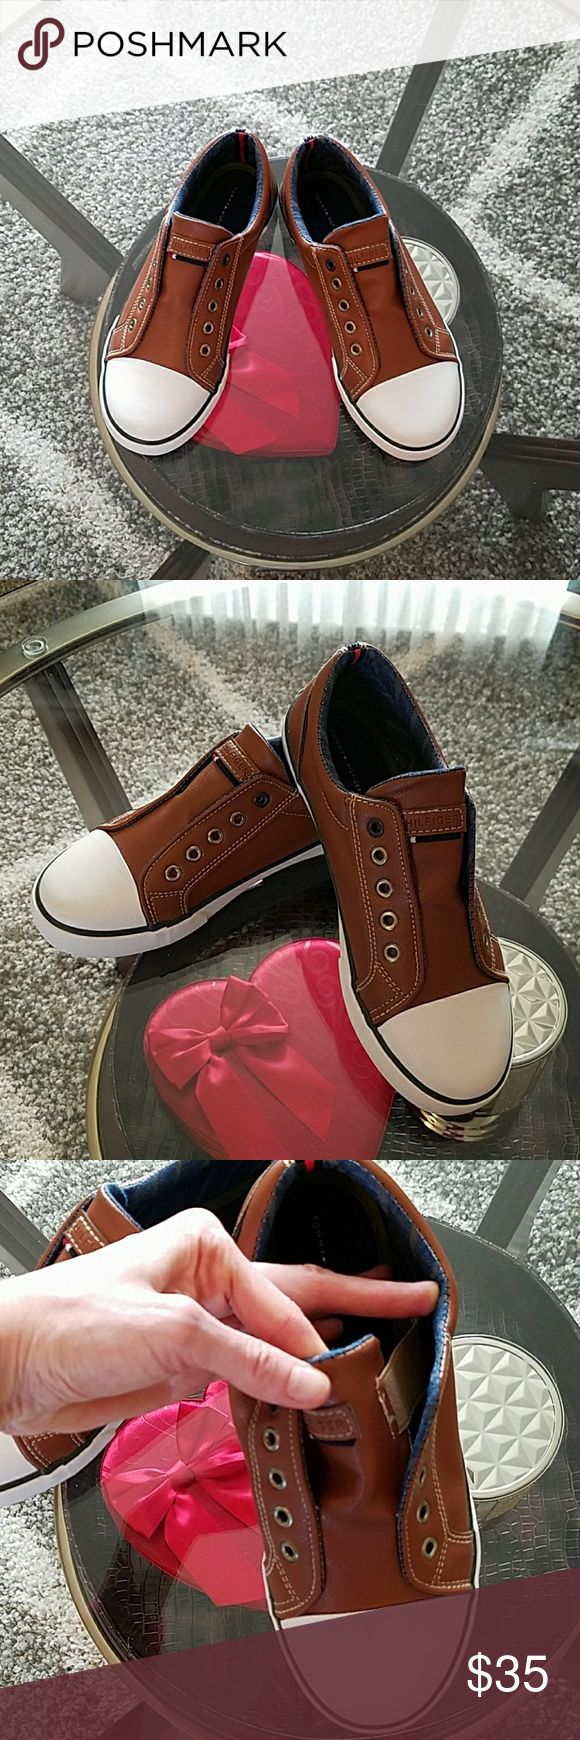 Tommy Hilfiger sneakers New Tommy Hilfiger sneakers  Size 4 Tommy Hilfiger Shoes